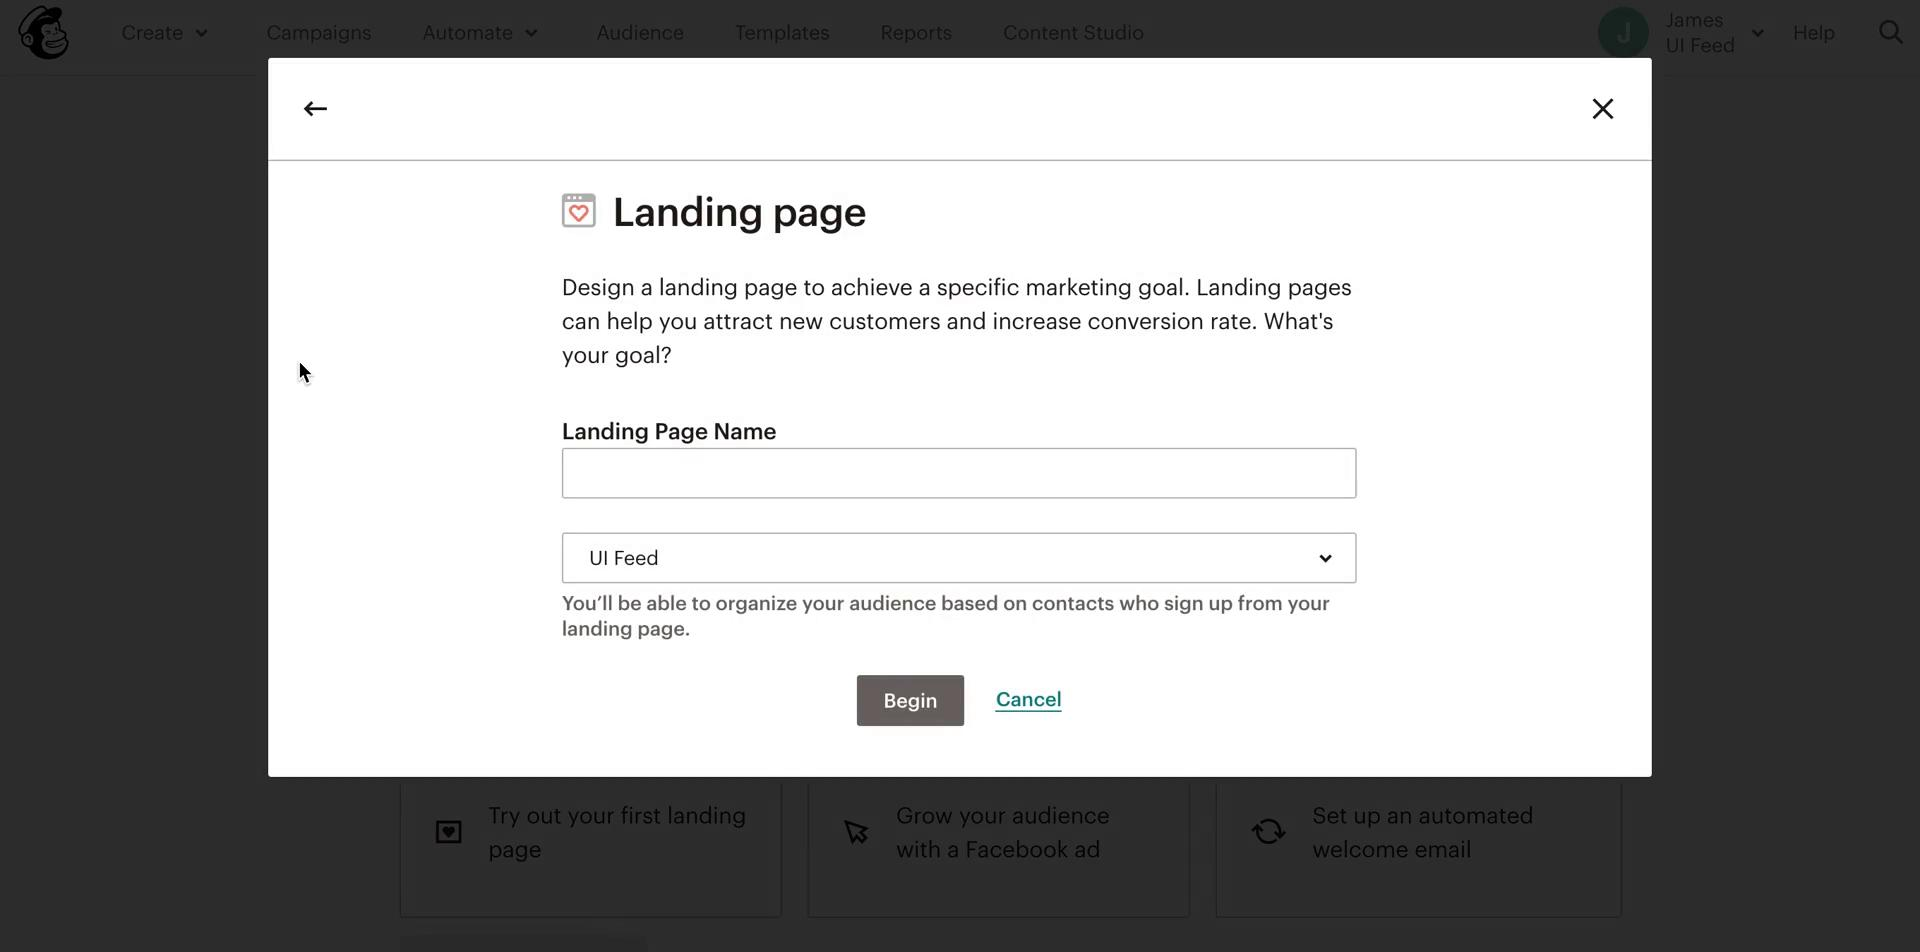 Screenshot of Create landing page during Creating a landing page on Mailchimp user flow